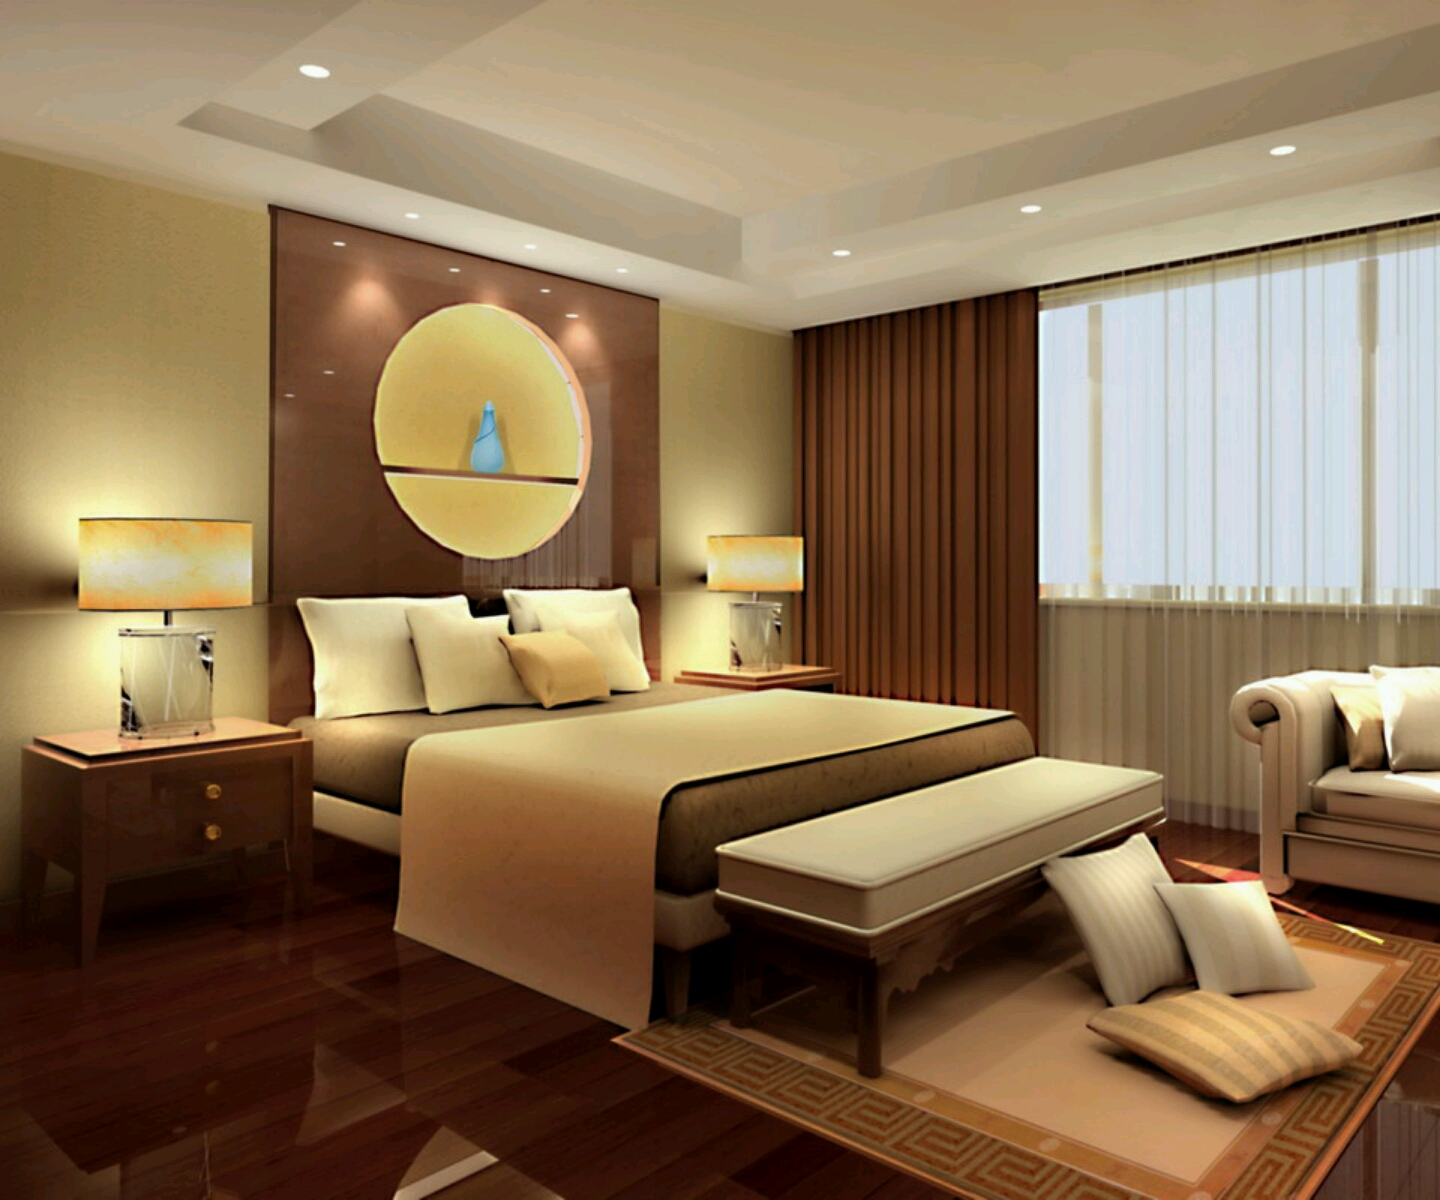 Interior Bed Room Design Modern Beautiful Bedrooms Interior Decoration Designs